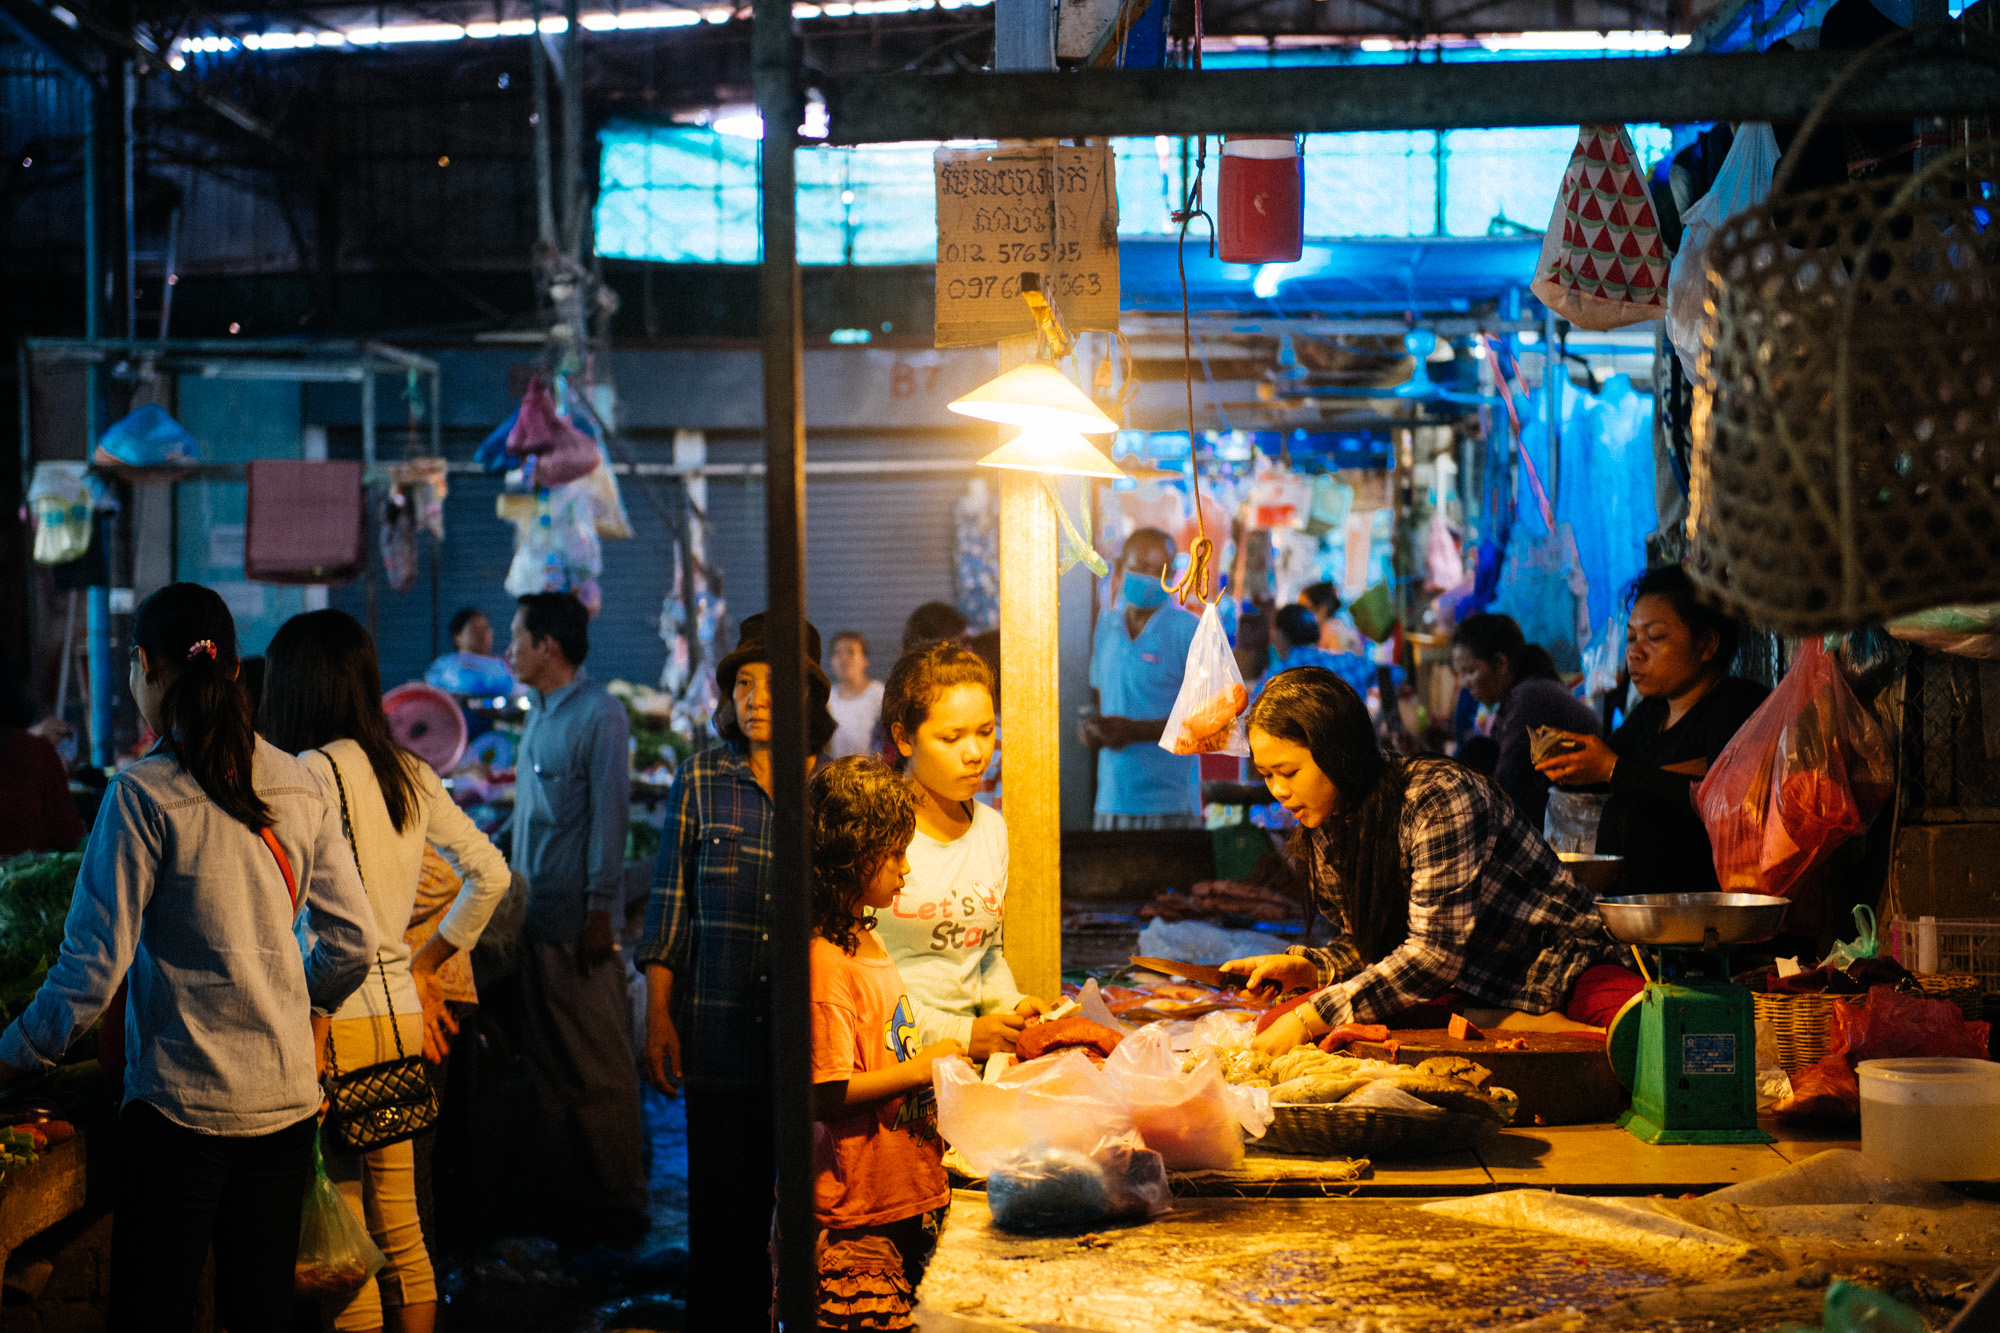 Sitting on the same platform she cuts meat on, woman selects produce to sell to customers.